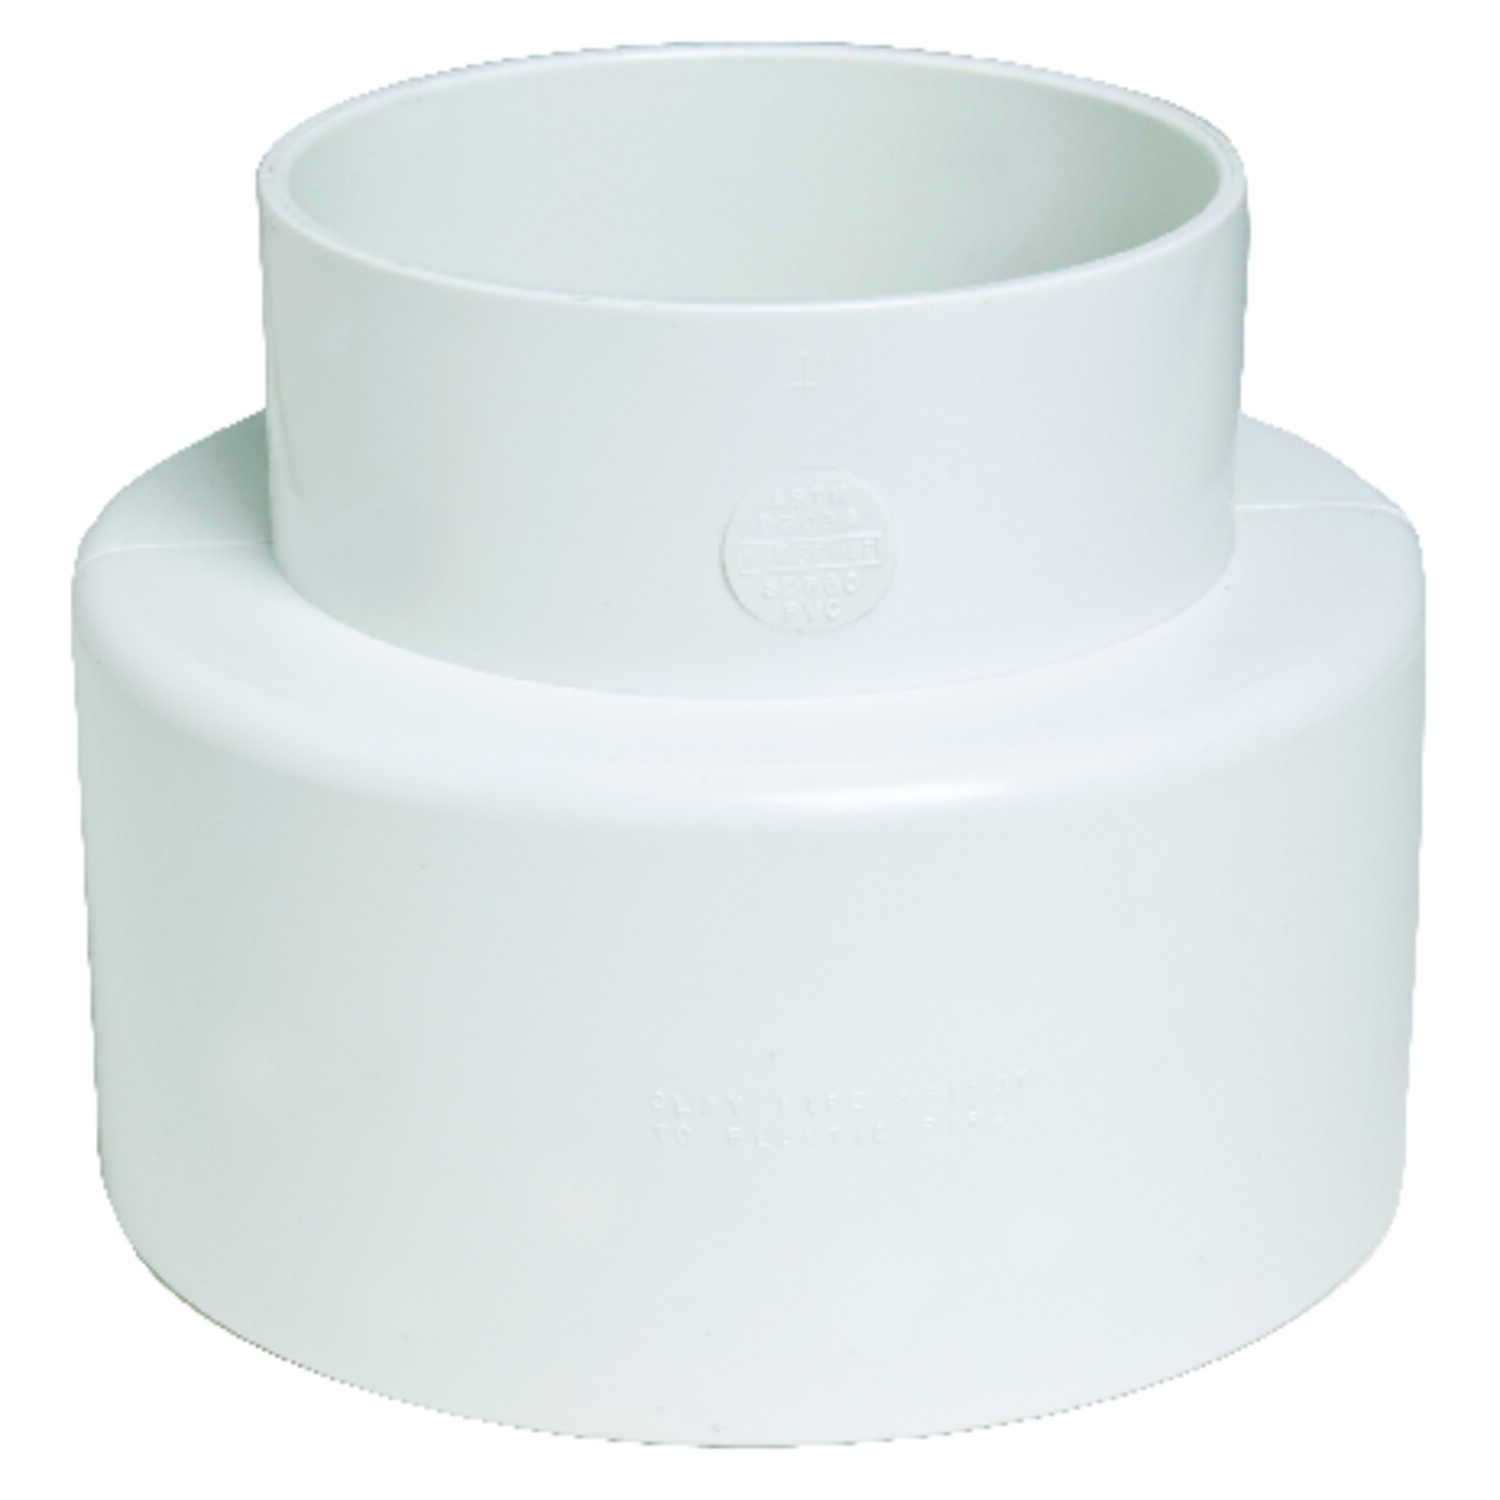 Plastic Trends  4 in. Hub   x 4 in. Dia. Hub  PVC  Pipe Adapter